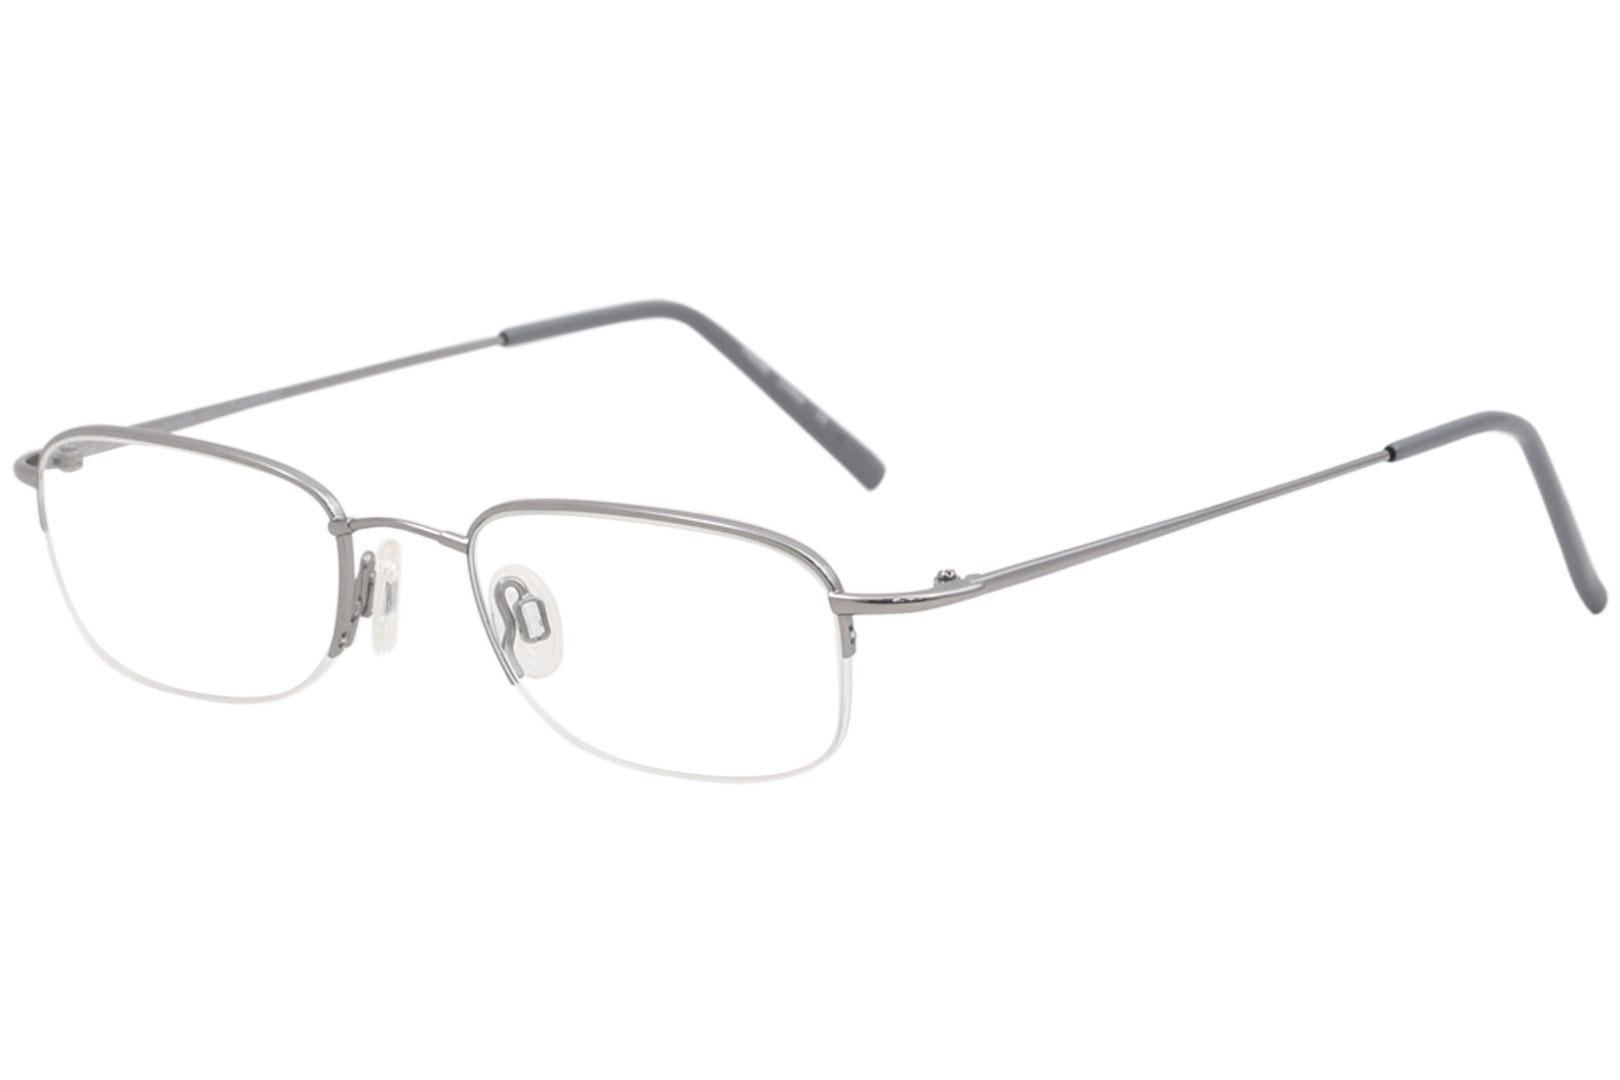 Image of Flexon Men's Eyeglasses 607 033 Light Gunmetal Half Rim Optical Frame 49mm - Light Gunmetal   033 - Lens 49 Bridge 20 Temple 140mm